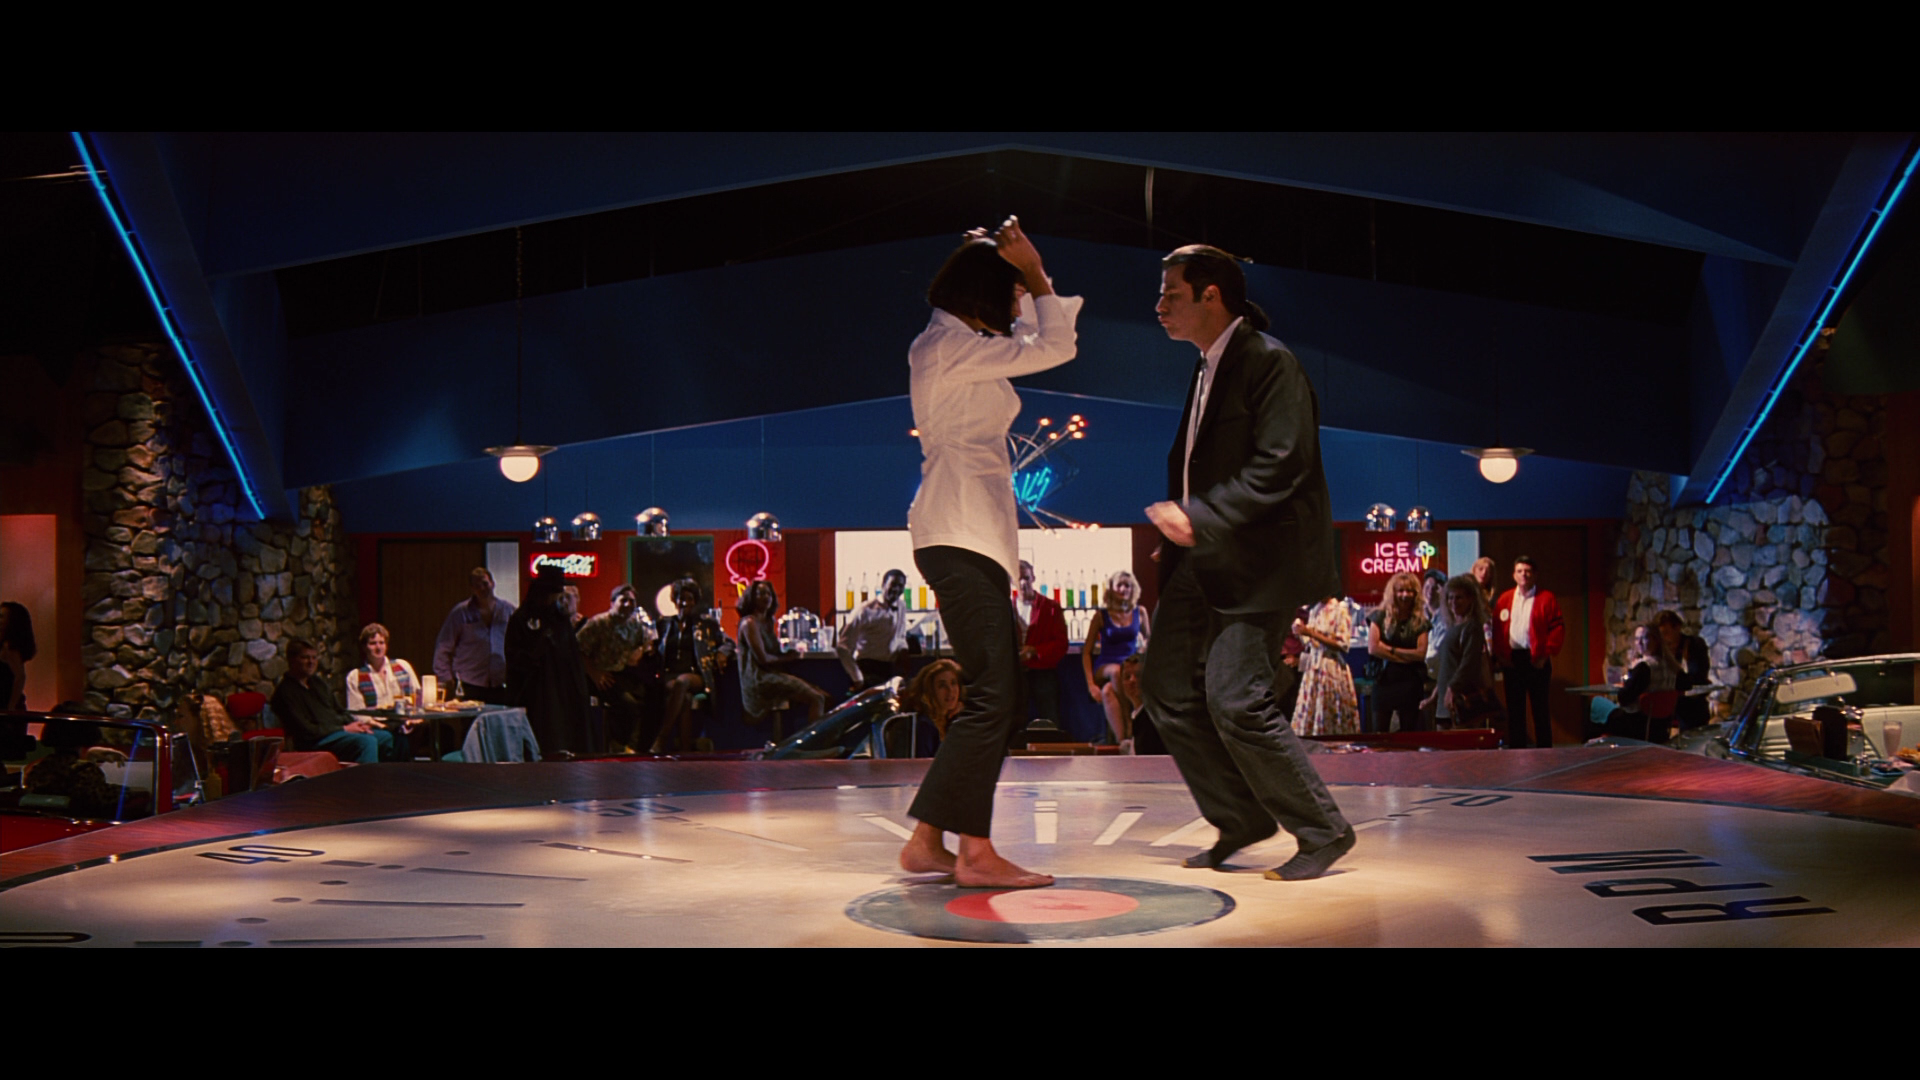 People 1920x1080 movies Pulp Fiction John Travolta dancing Uma Thurman actress actor women men Vincent Vega restaurant